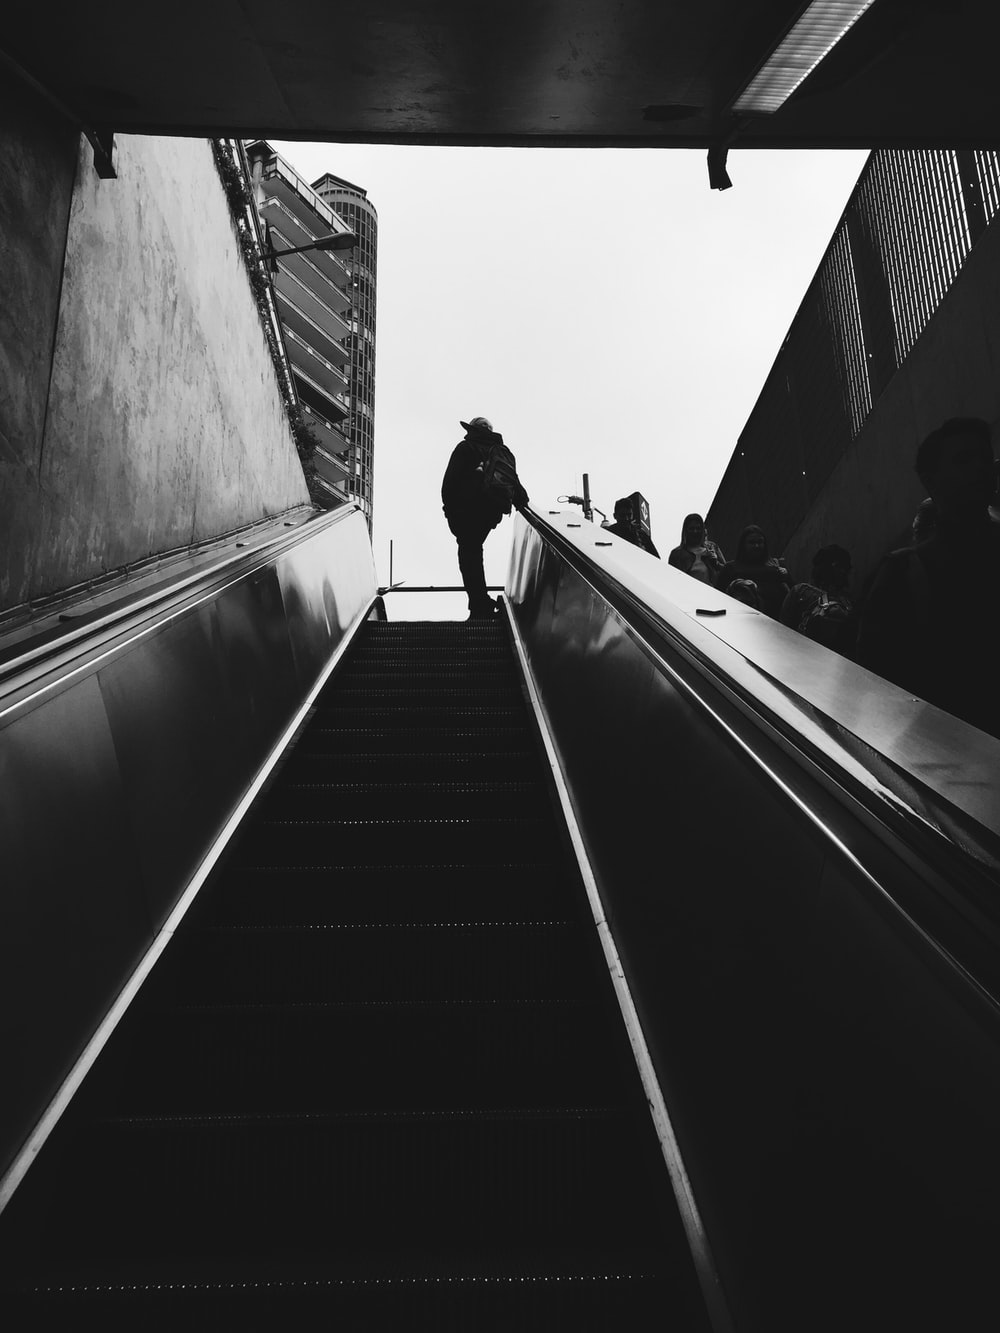 silhouette of person standing beside escalator during daytime